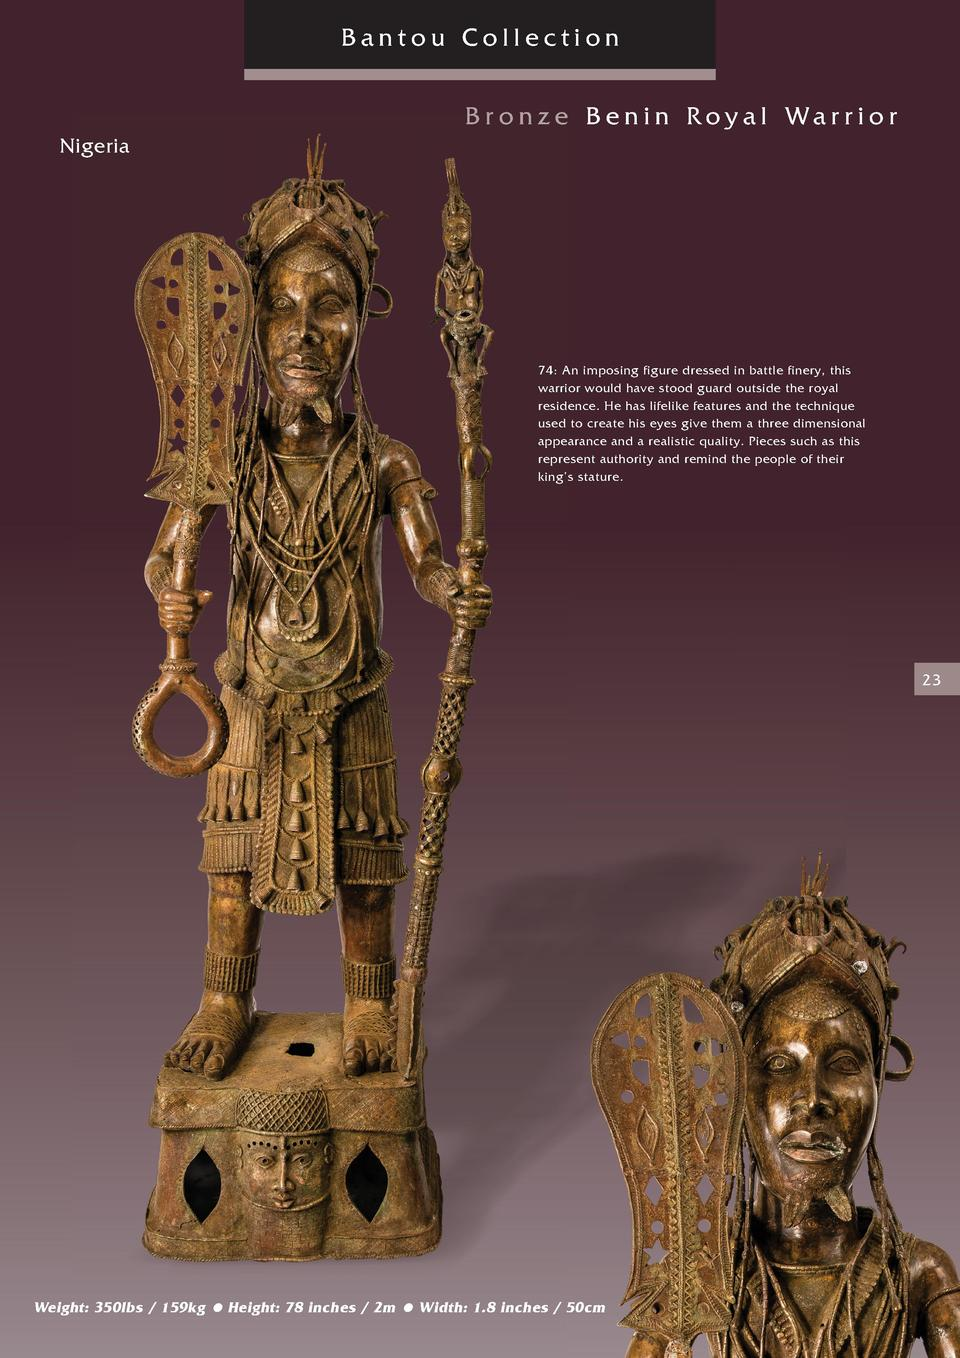 Bantou Collection Br onze Benin Royal Warrior Nigeria  74  An imposing figure dressed in battle finery, this warrior would...